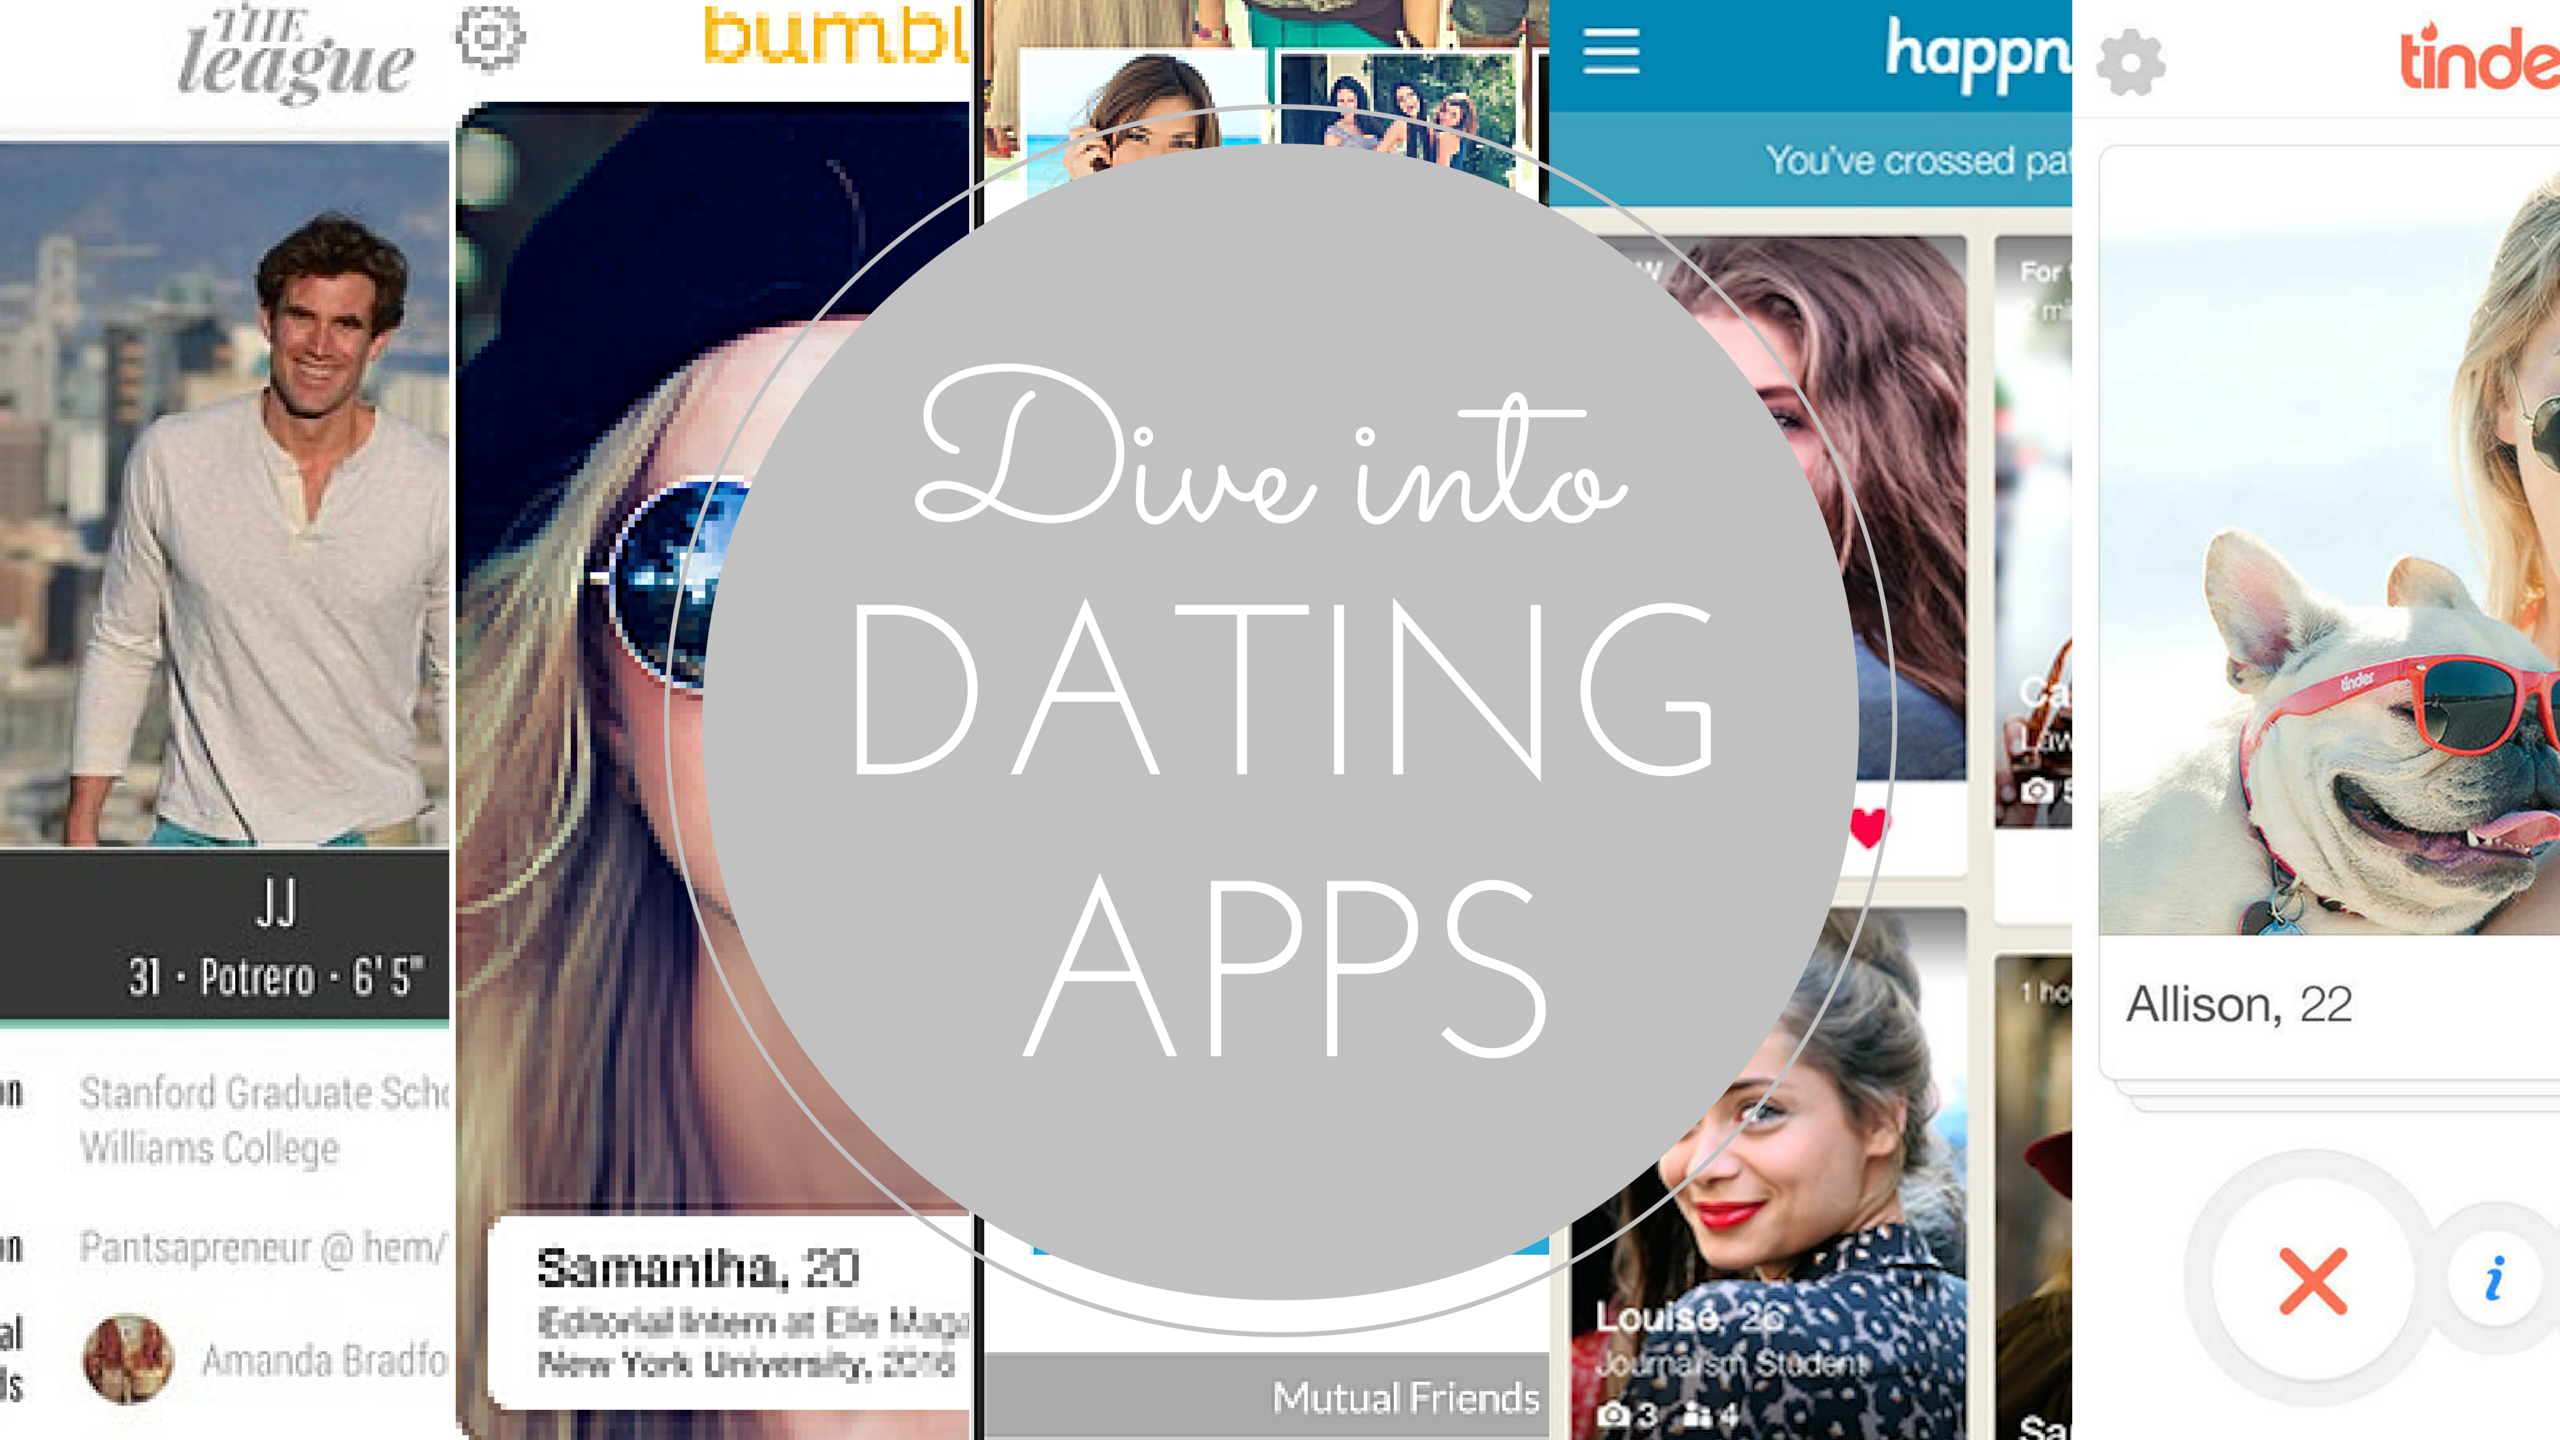 Name of dating apps